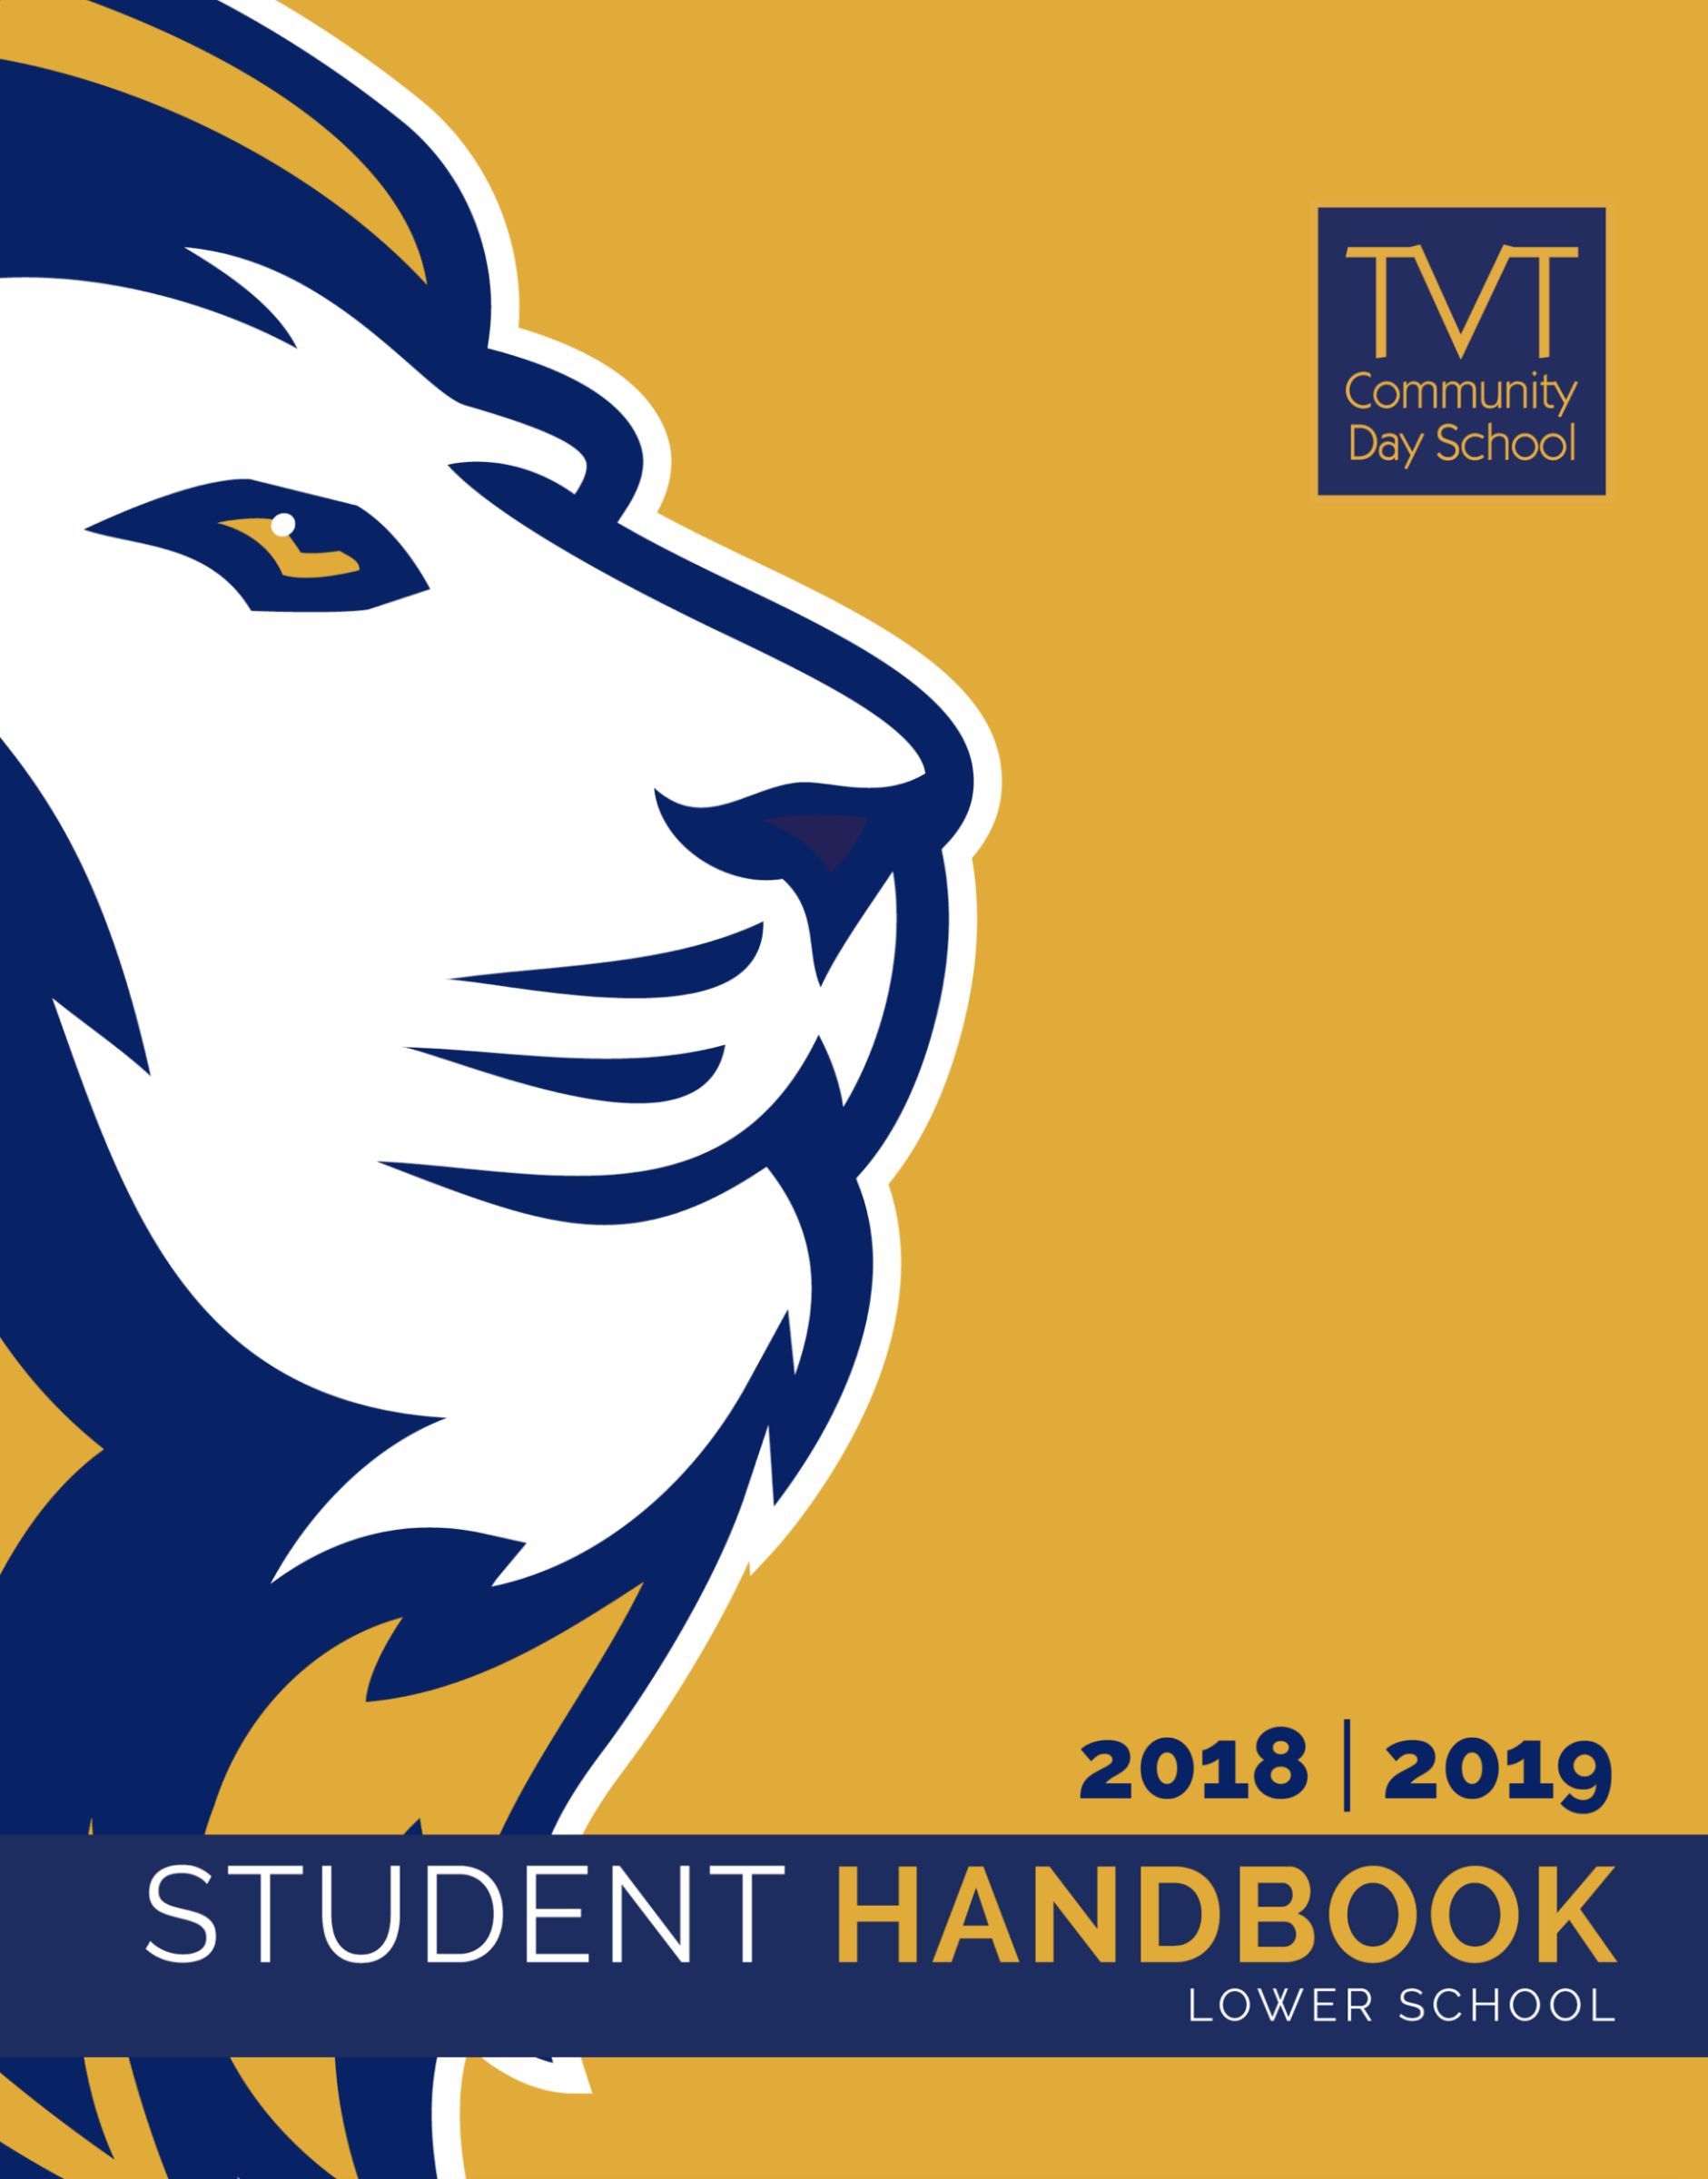 Download the lower school student handbook